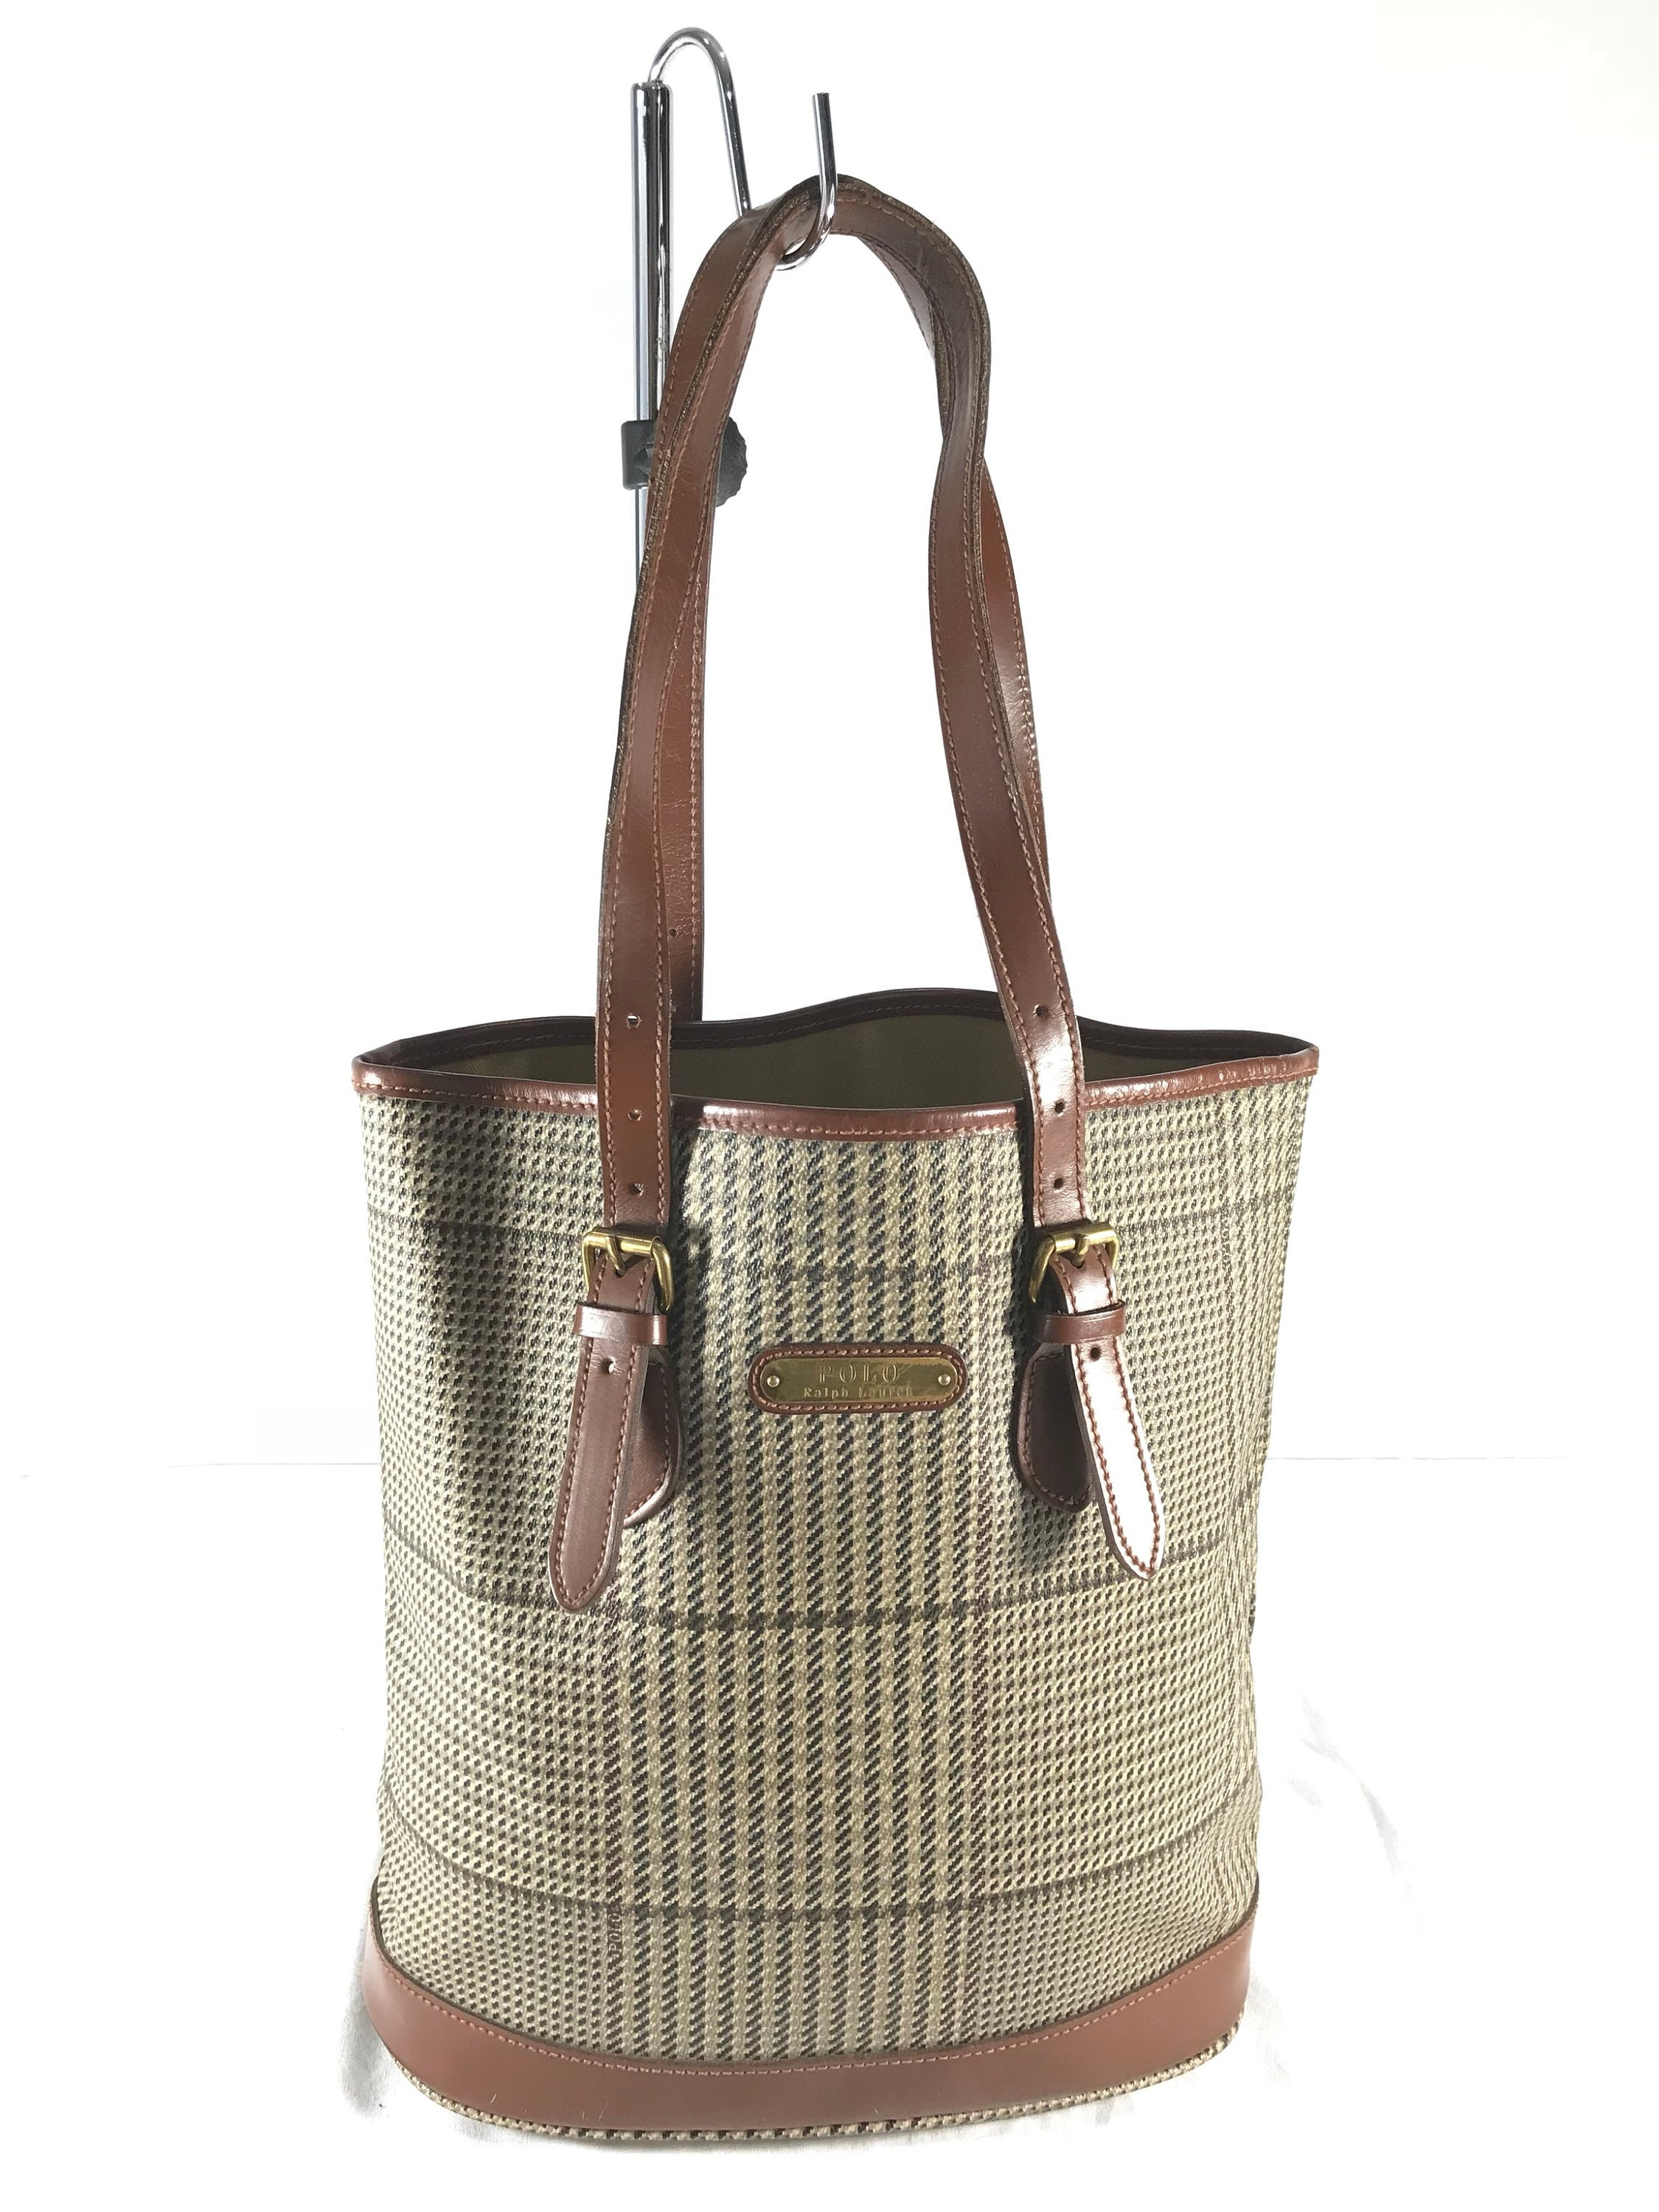 a8f241b762b5 POLO RALPH LAUREN Houndstooth Brown Leather Trim and Canvas Vintage  Authentic Satchel Shoulder Bag